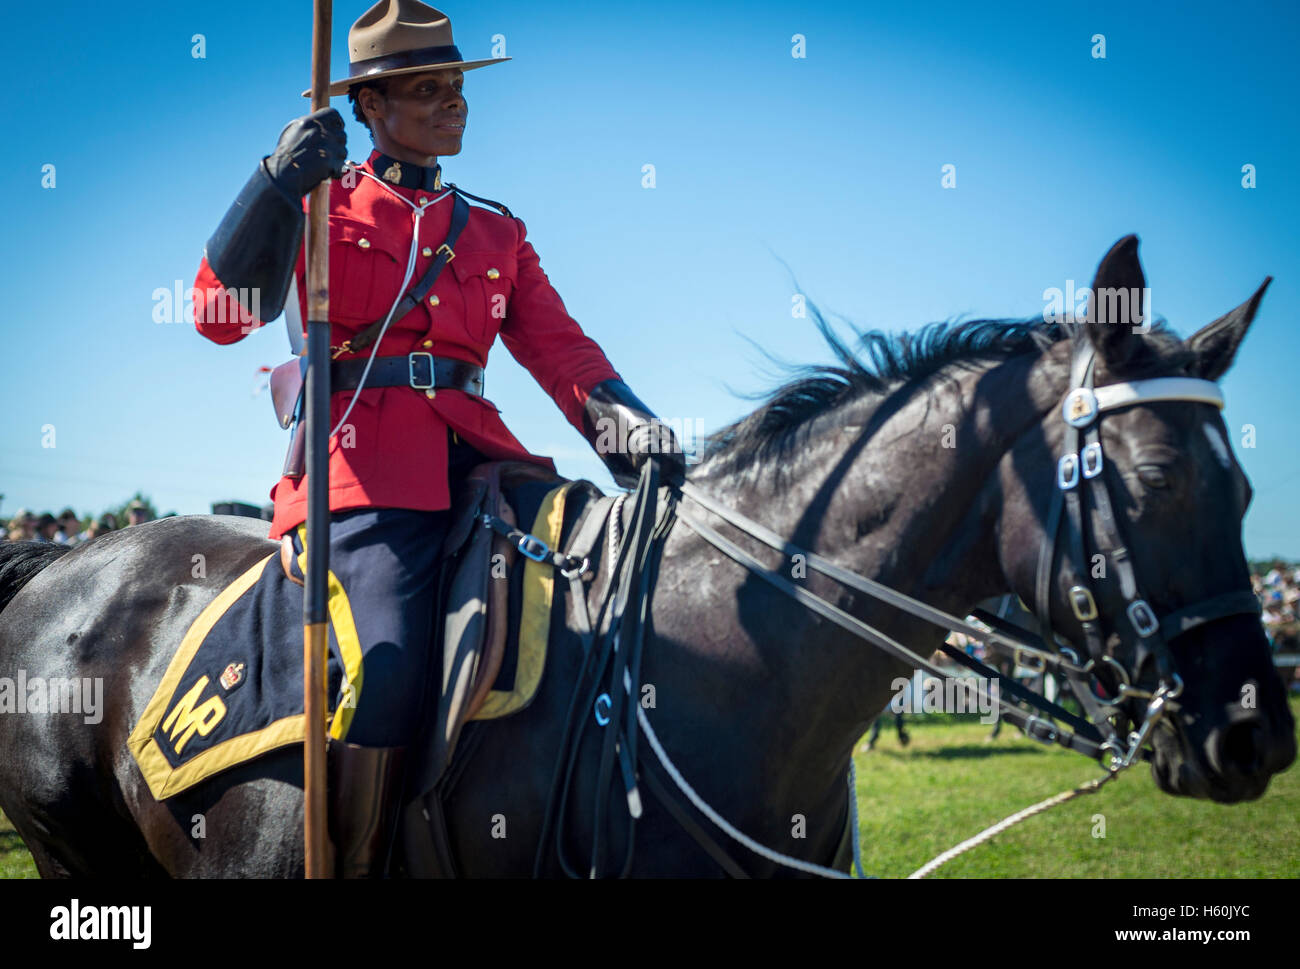 Female RCMP Mountie riding a horse during a musical ride ceremony - Stock Image